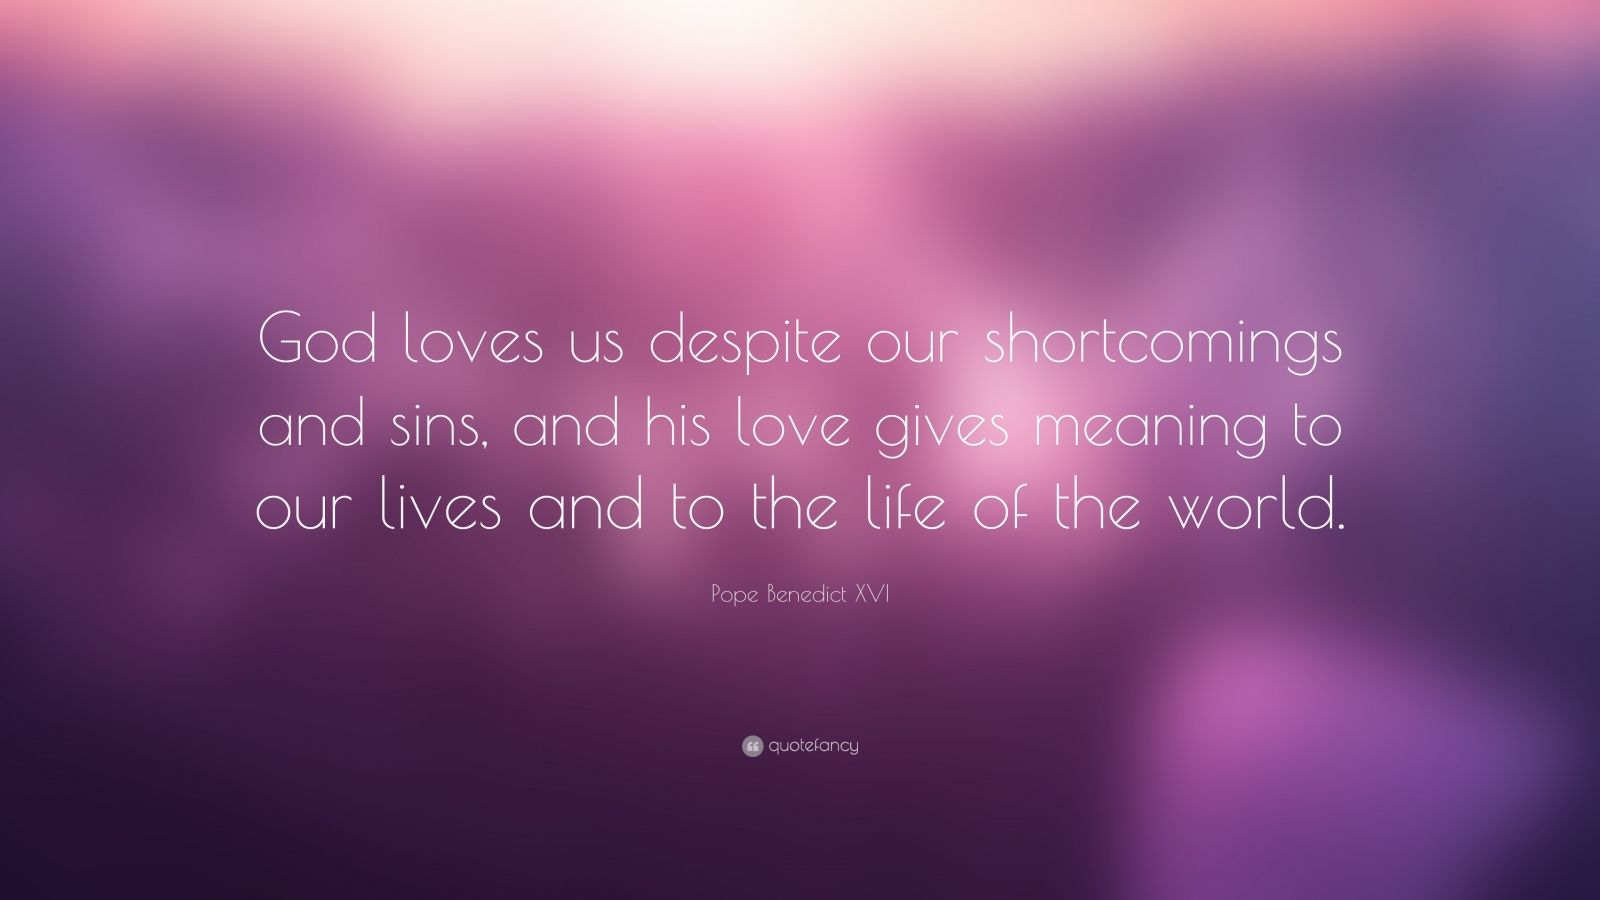 """Pope Benedict XVI Quote: """"God loves us despite our shortcomings and sins, and his love gives meaning to our lives and to the life of the world."""""""